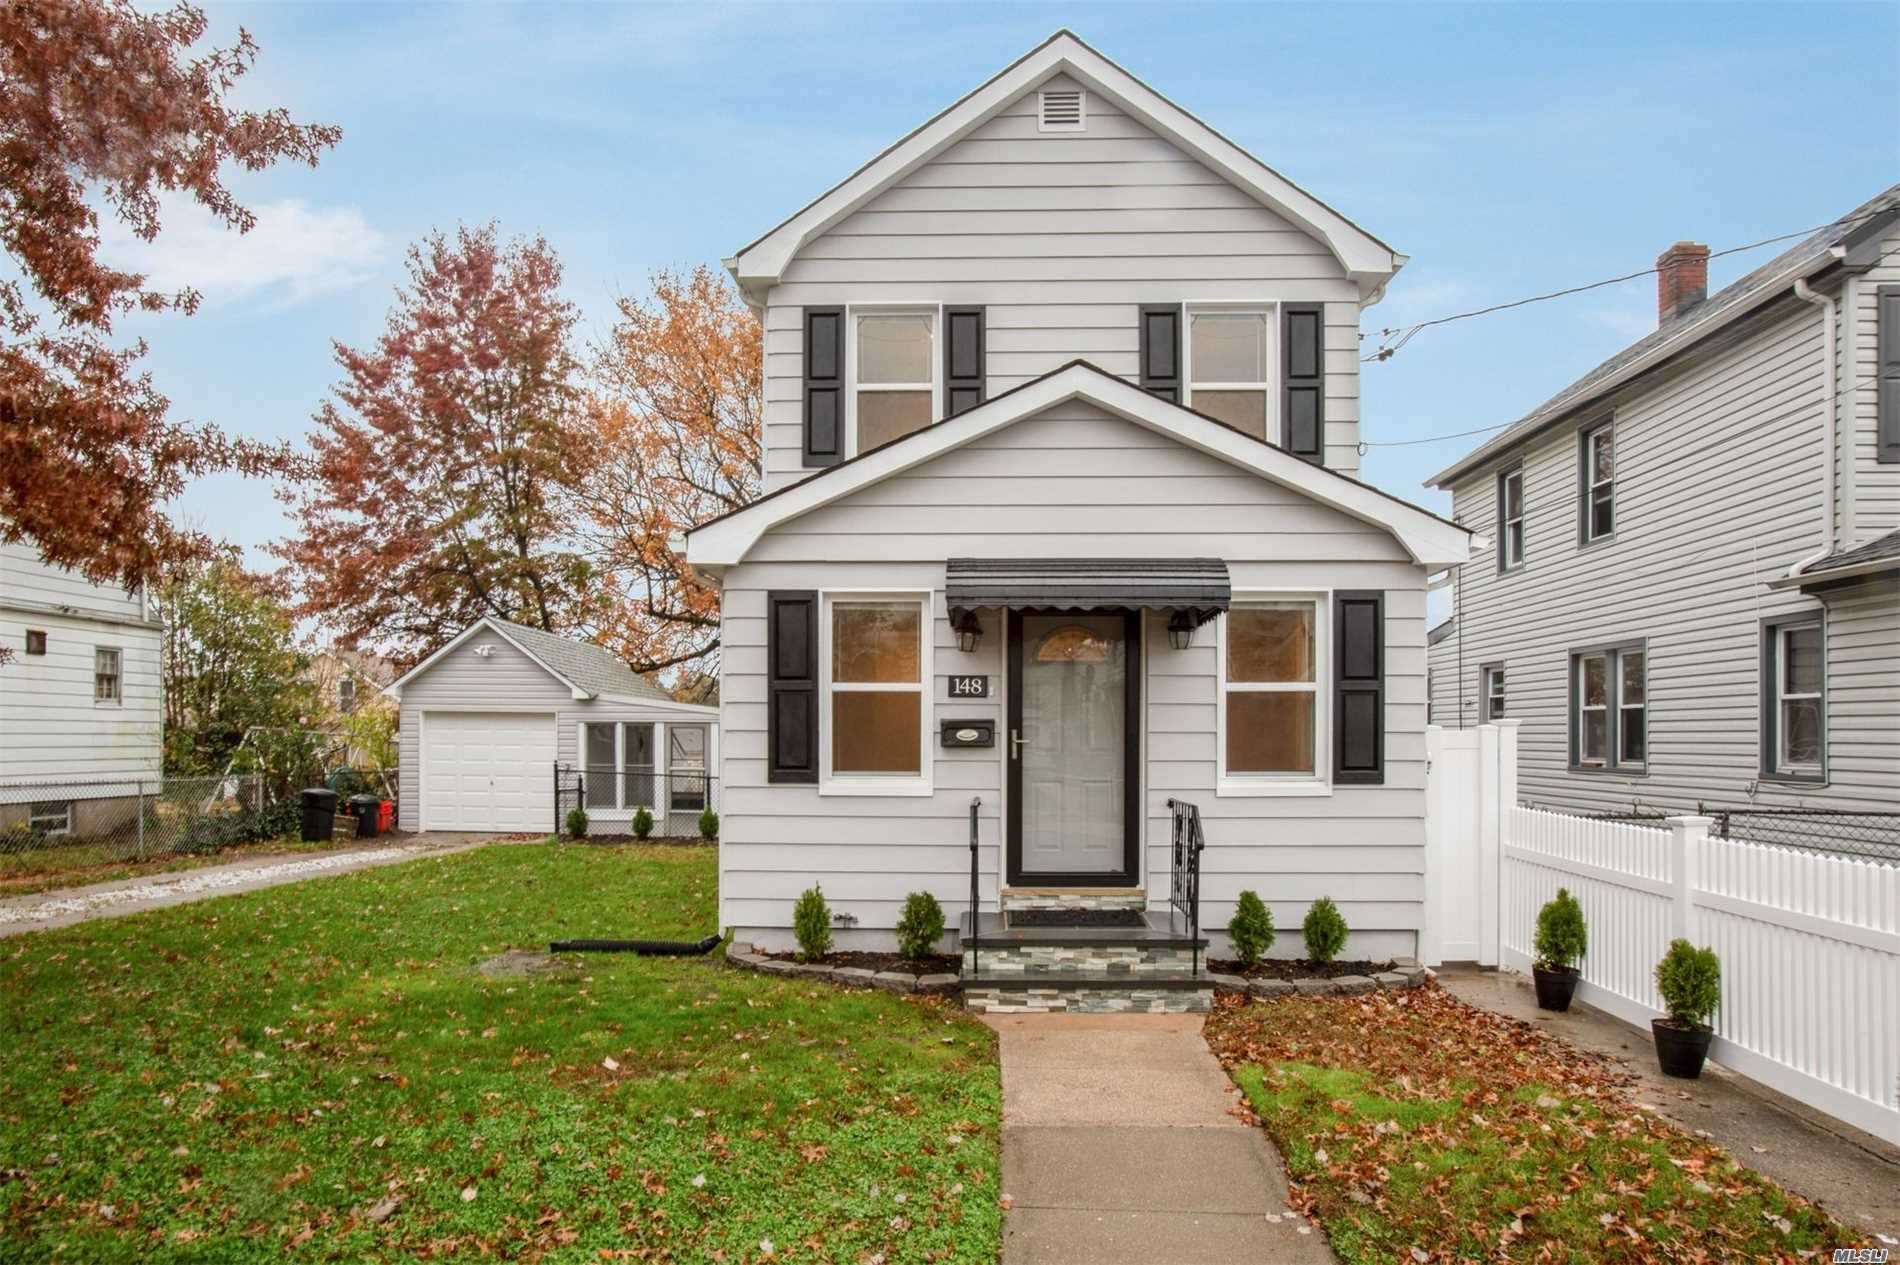 Beautiful Renovated 3 Bedrooms House!!!..Hi Hats Through The Whole House, New Kitchen W/ Granite Counter, Stainless Steel Appliances, New Bathrooms, Full Fin. Basement, Gleaming Wooden Floors, New Stoop, Too Much To List!!!..Close To All! ,